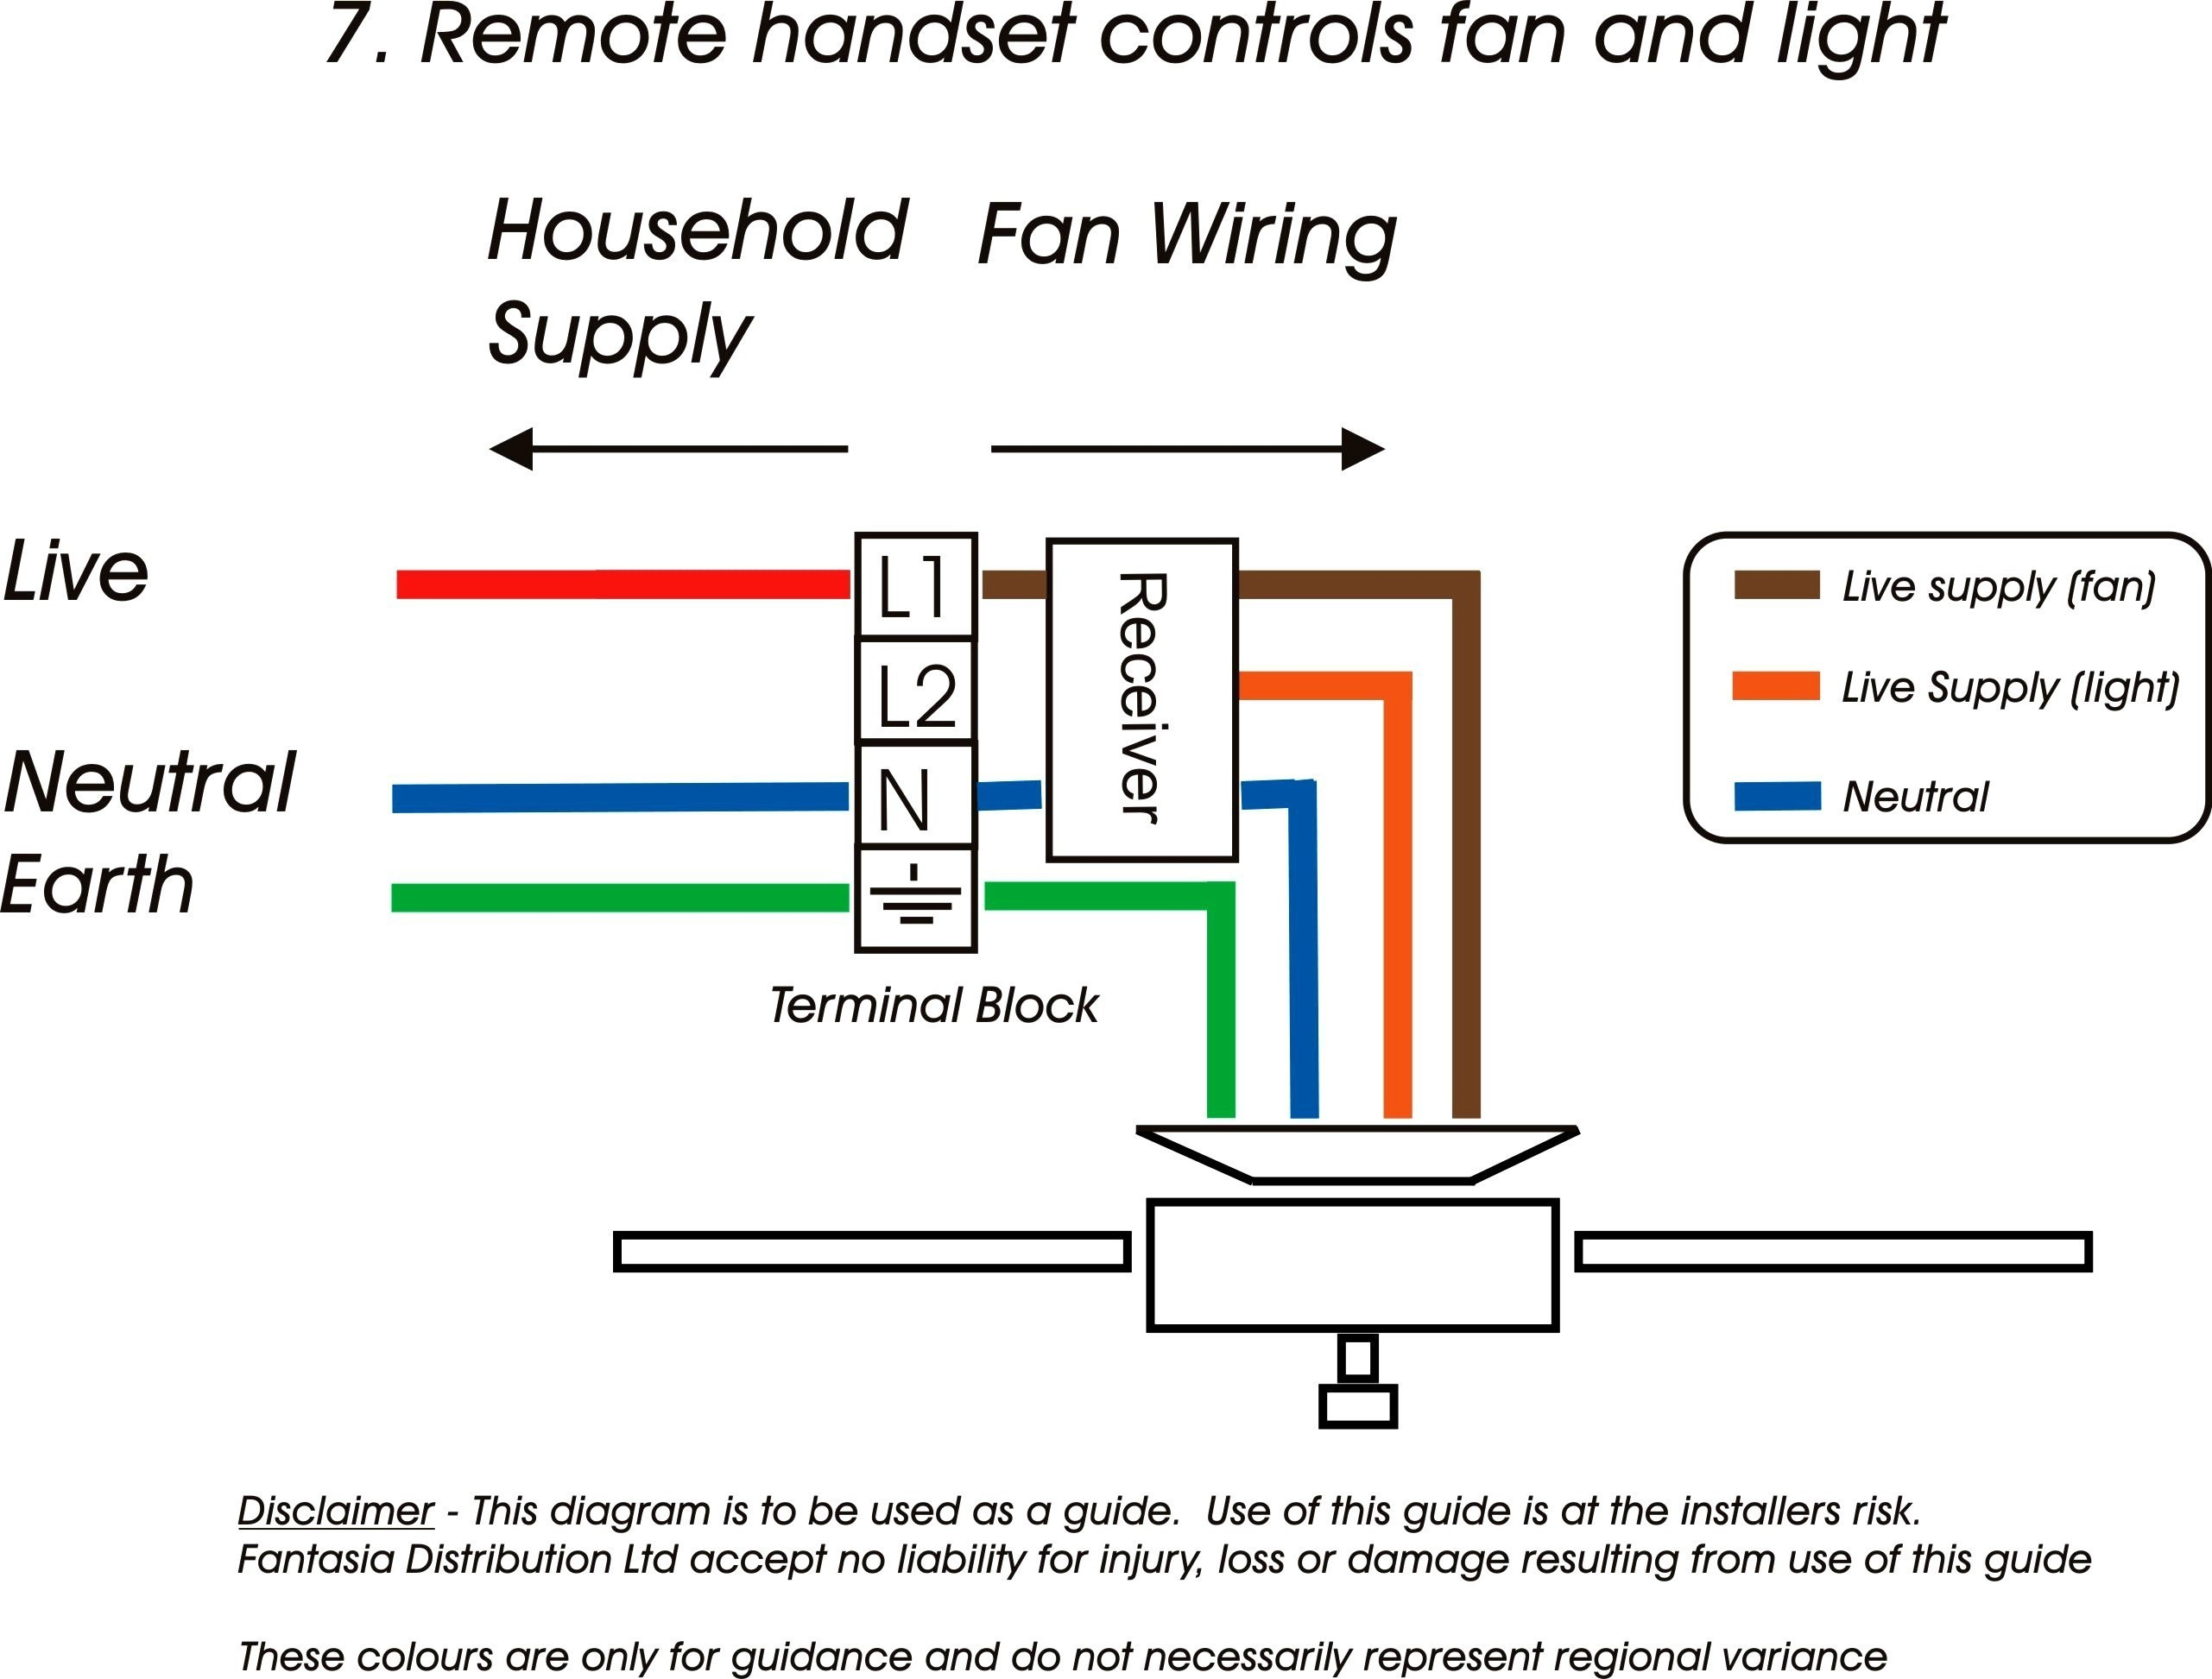 ceiling fan 3 speed wall switch wiring diagram Collection-3 Speed Ceiling Fan Switch Wiring Diagram Best Chain Diagram New Unique 3 Speed Ceiling 16-g